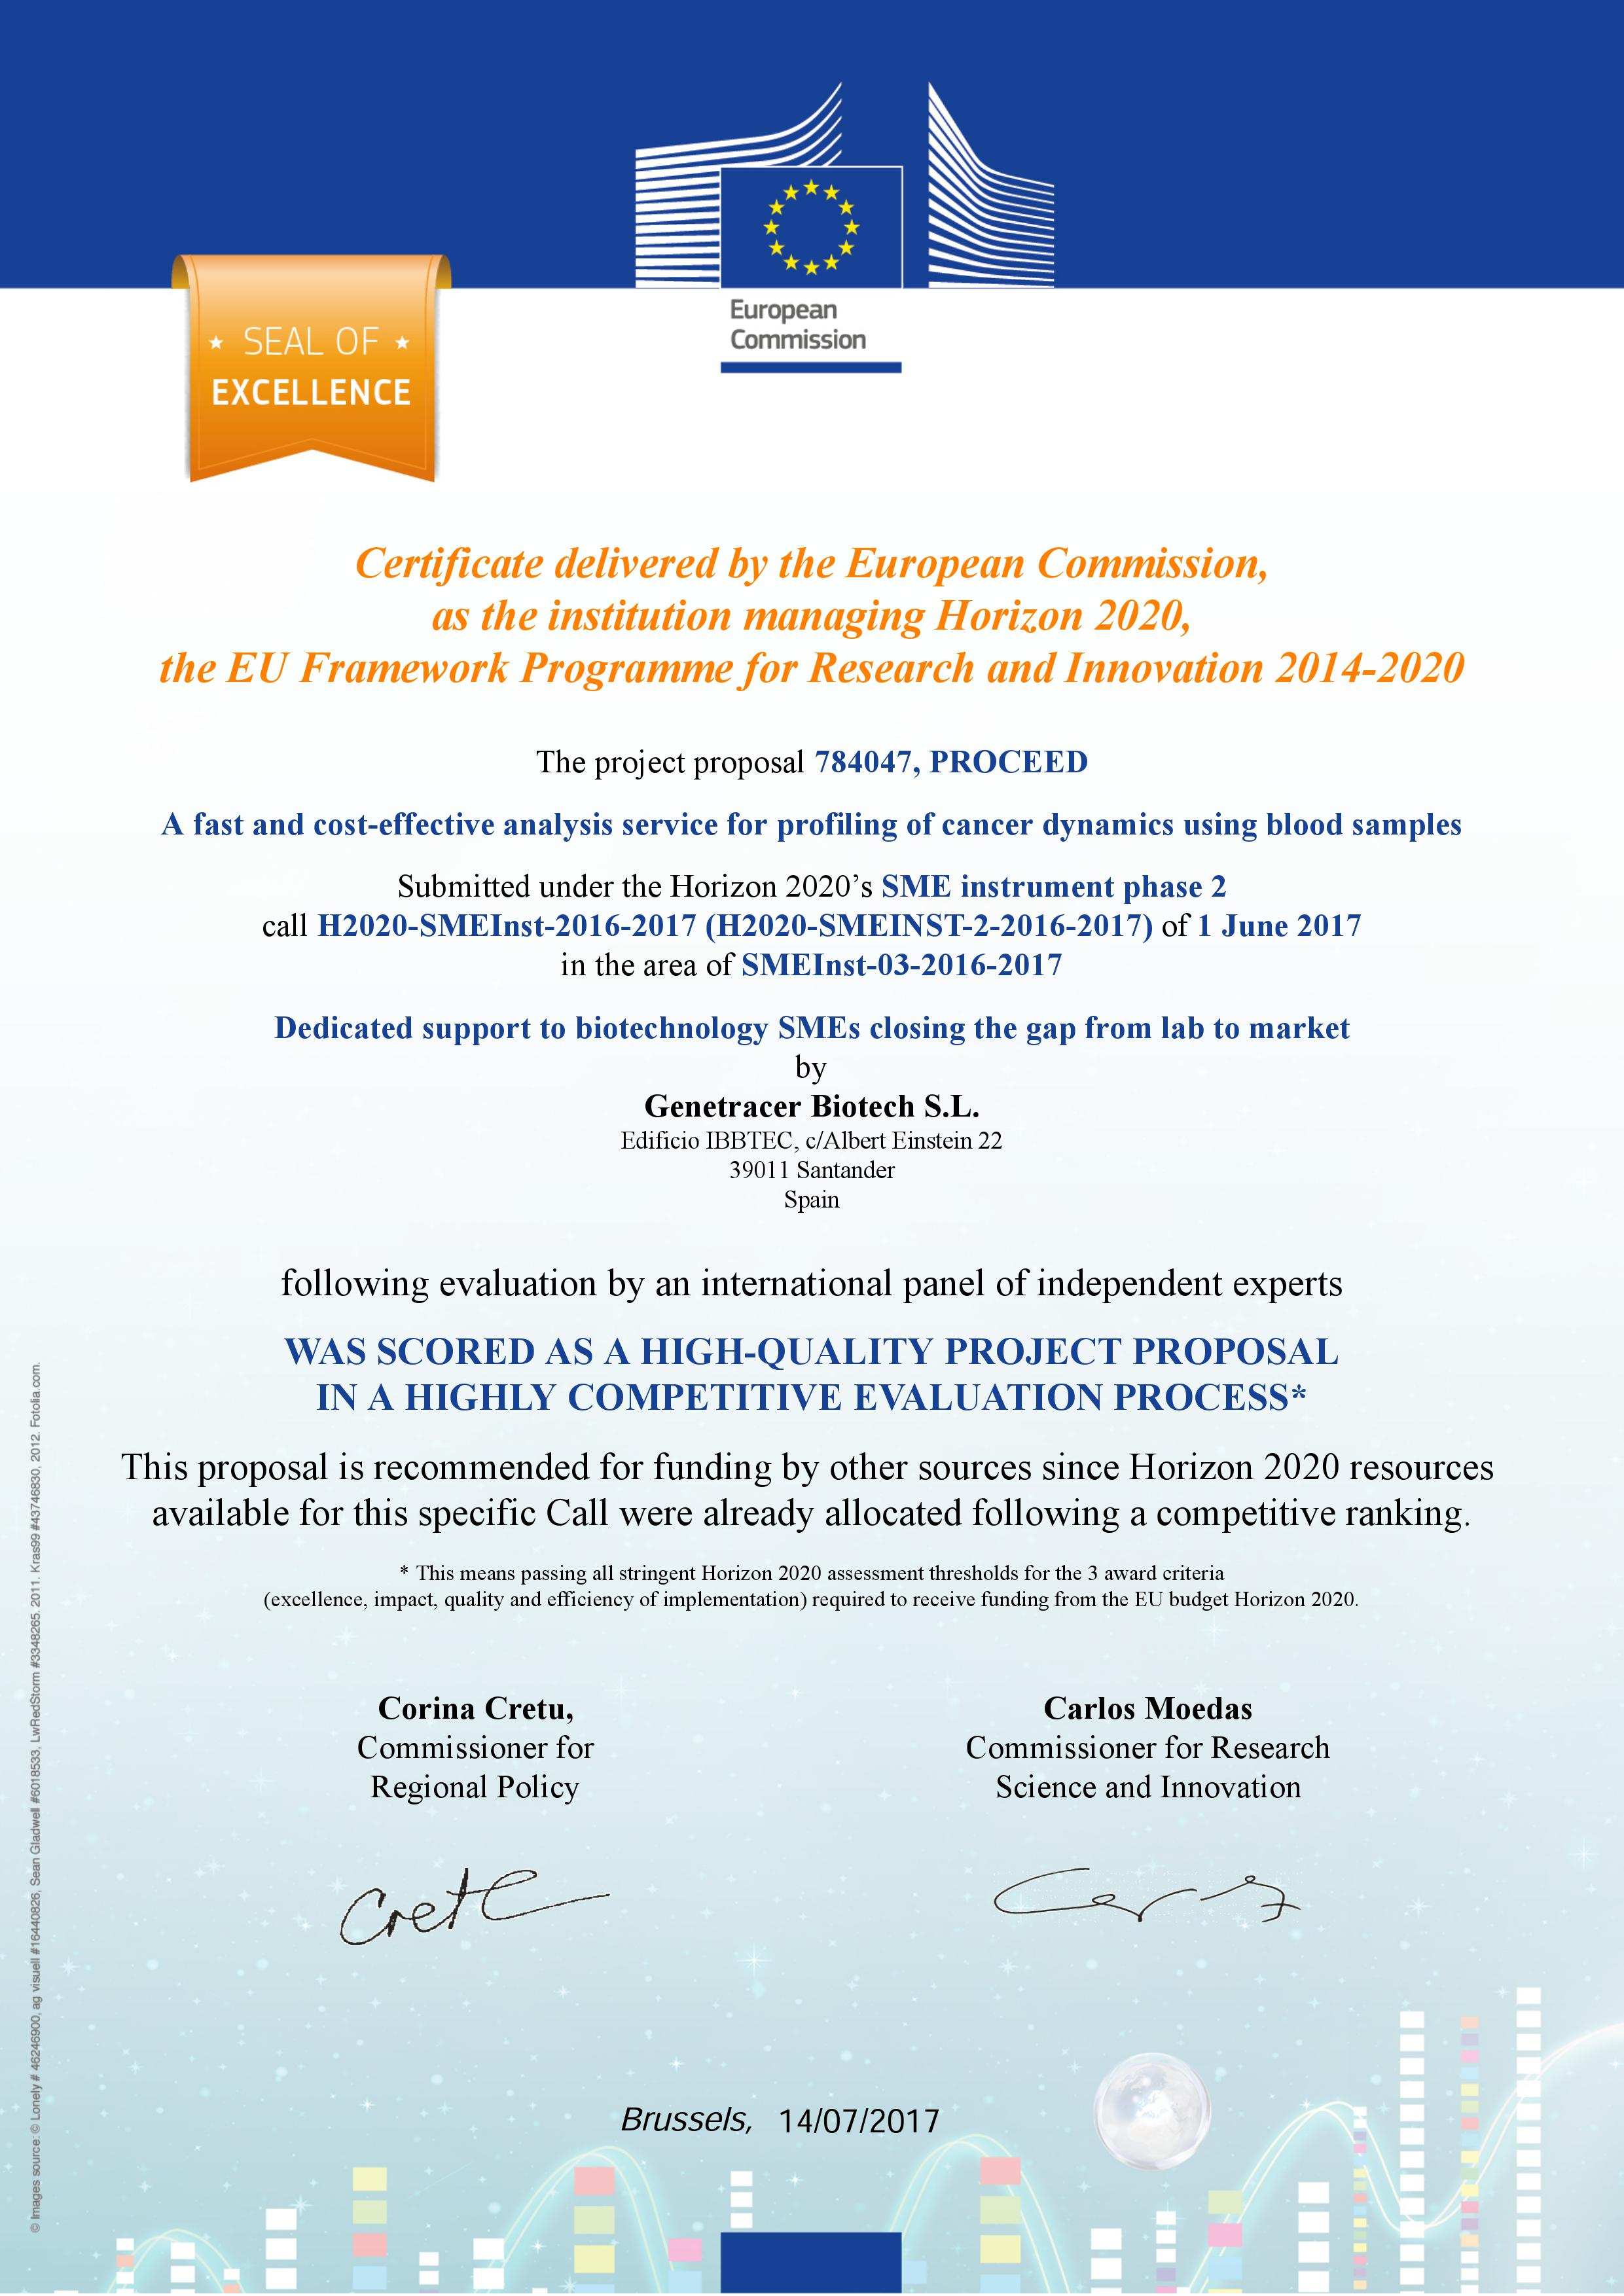 Genetracer Obtains The Certificate Of Excellence From The European